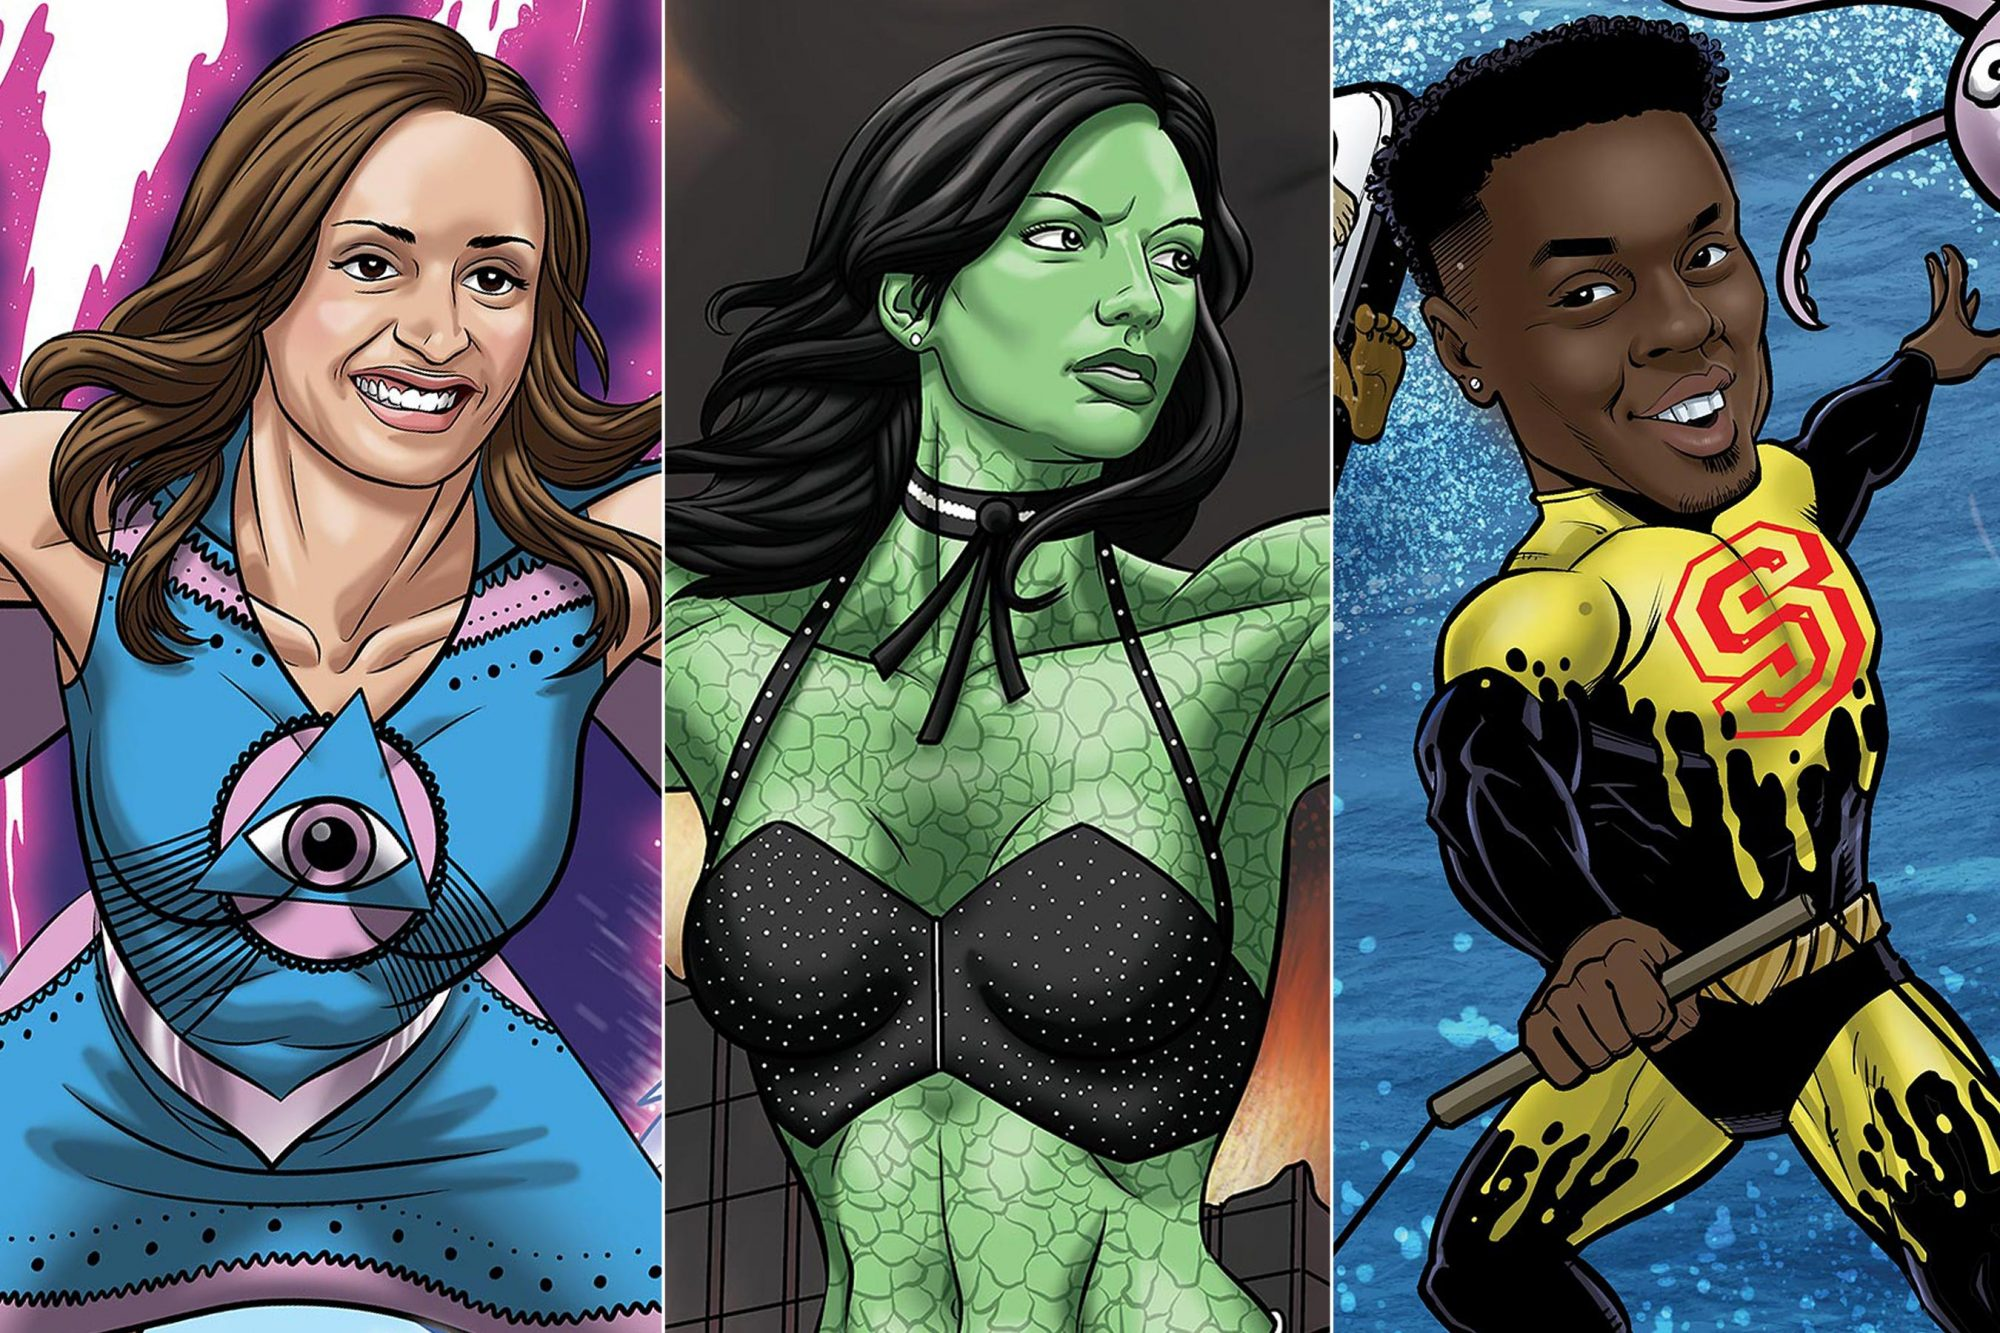 Behold the first batch of Big Brother season 20 comic book covers!